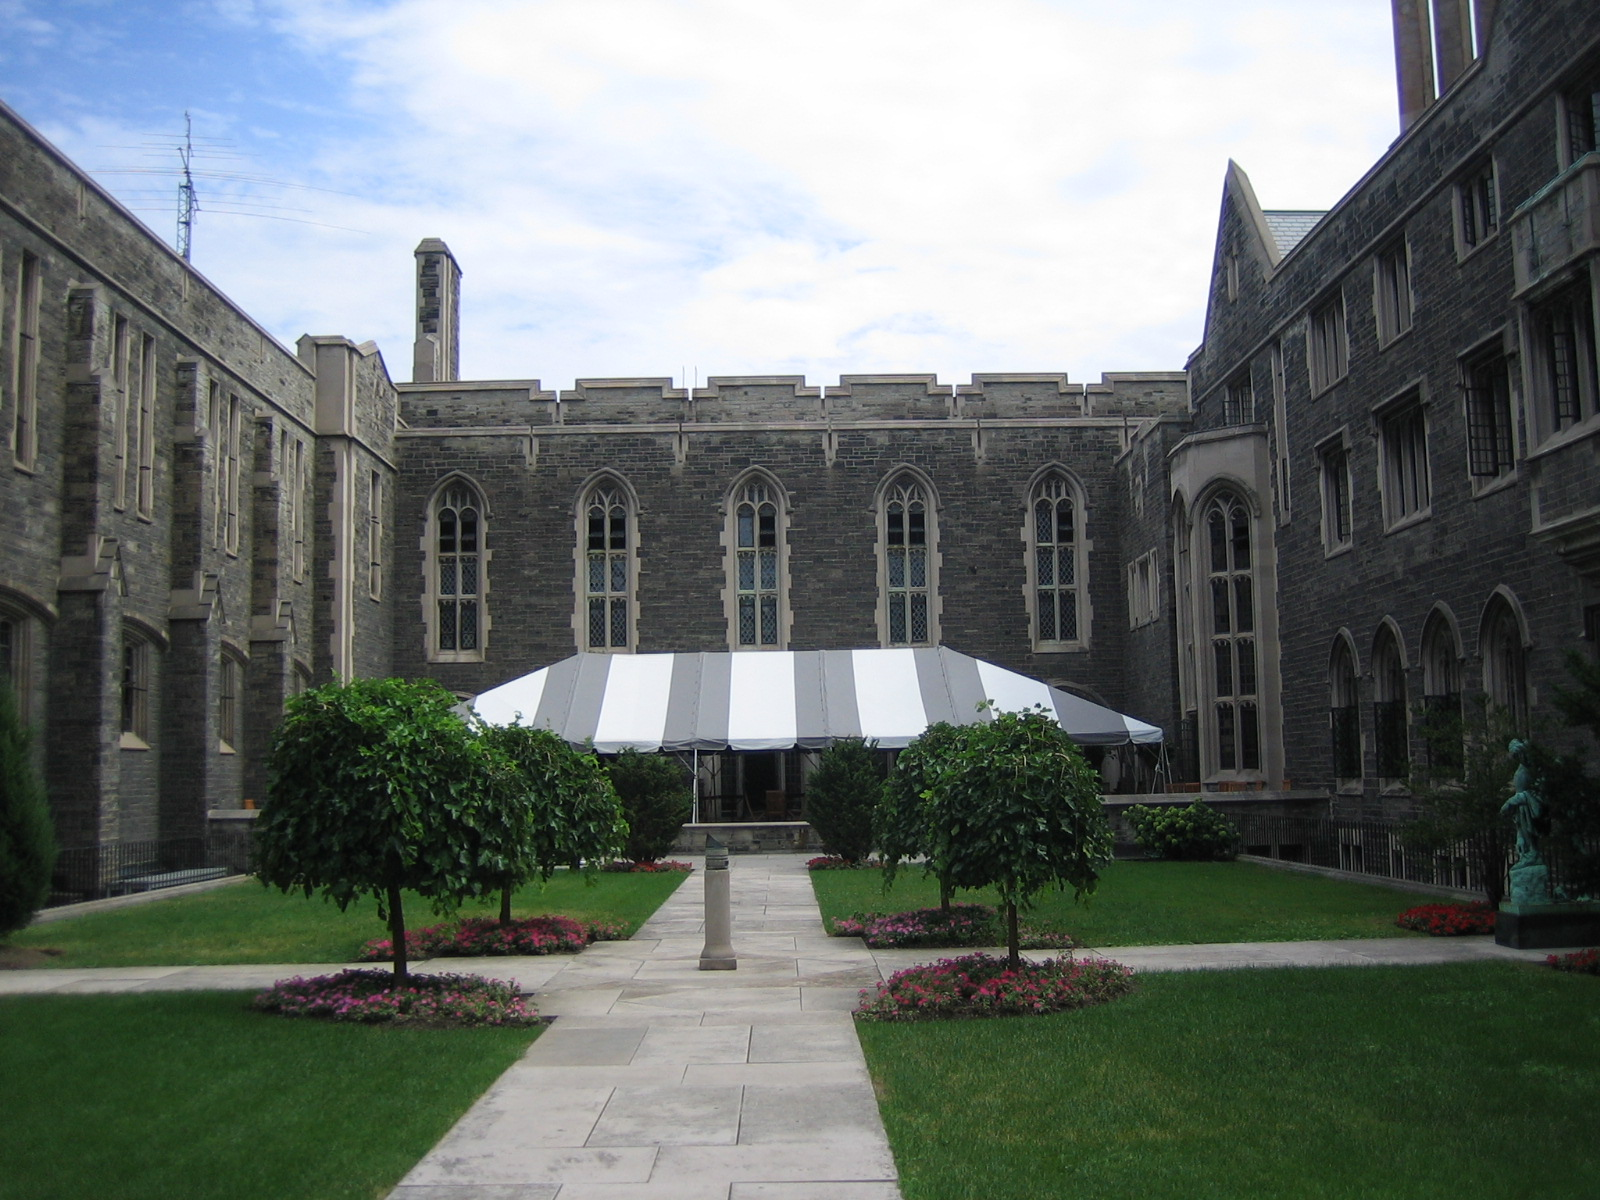 Paps hosting its 13th annual forum at the university of for Chair in engineering design university of toronto